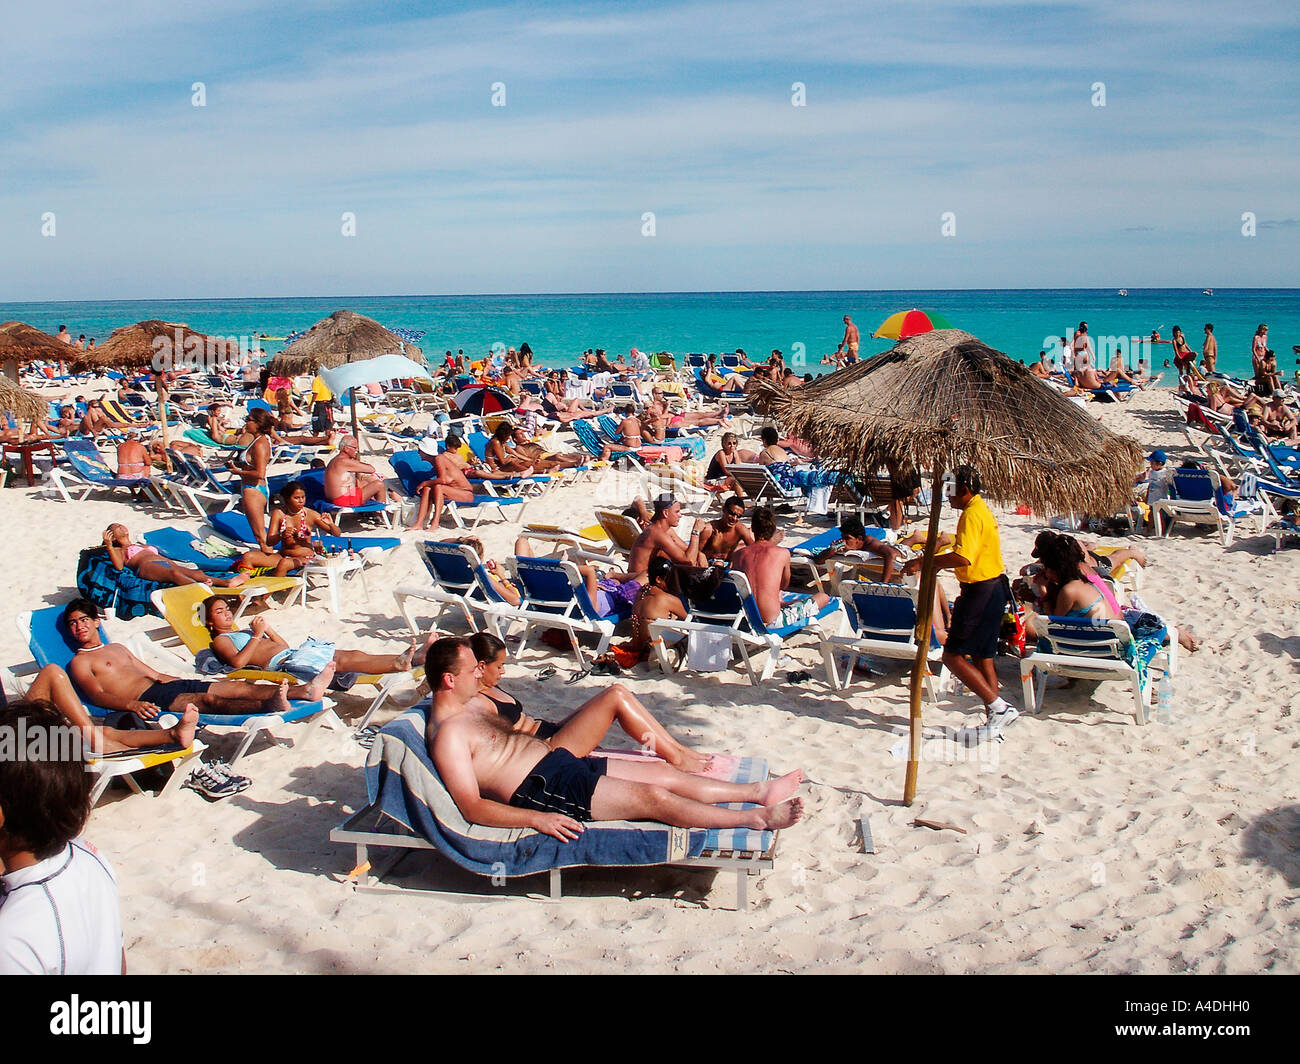 Christmas Vacation In Mexico.Crowded Beach At Christmas In Playa Del Carmen Cancun Mexico